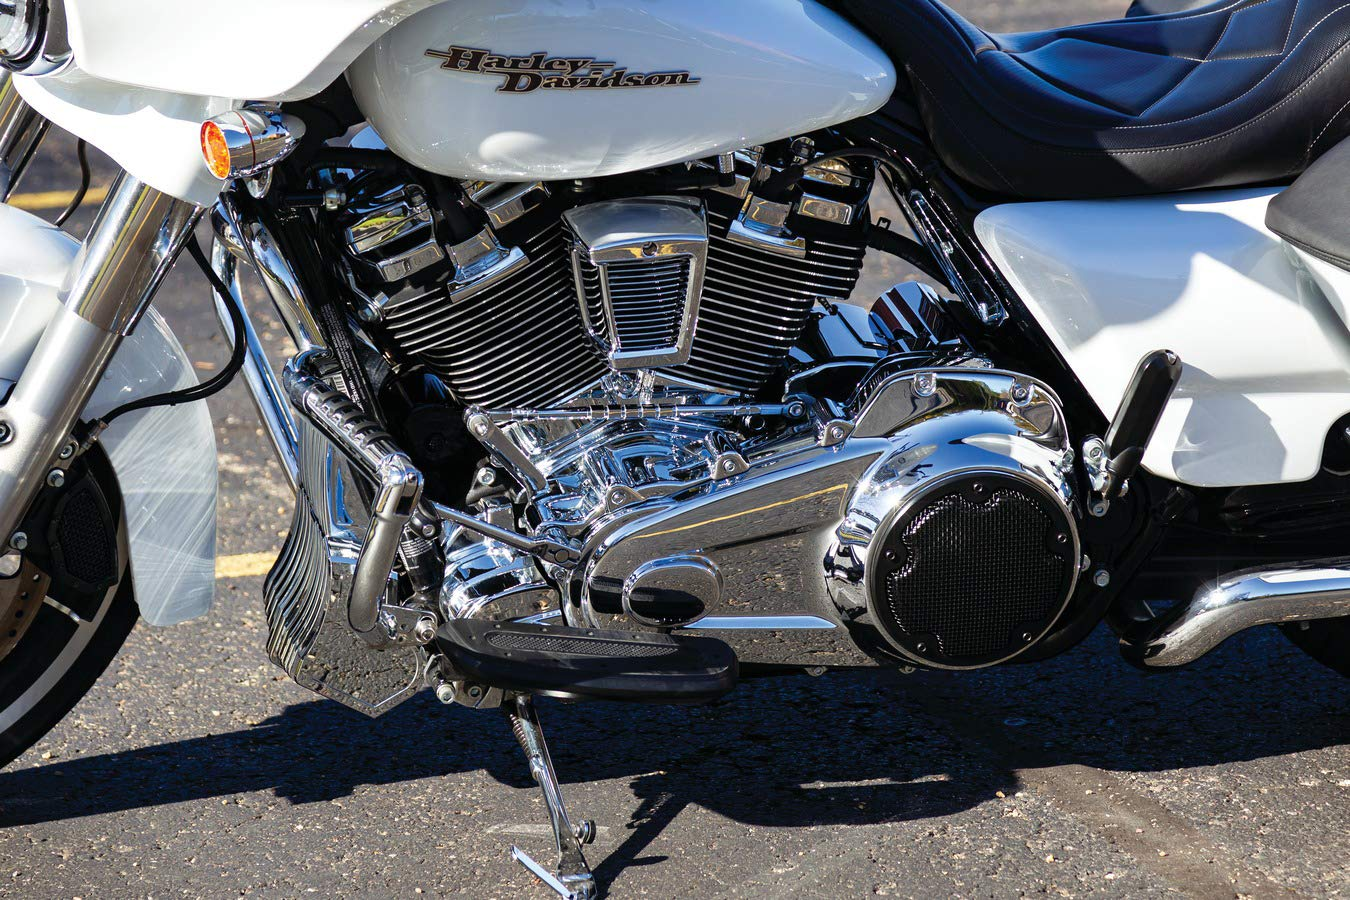 Kuryakyn 6414 Chrome Precision Cover for Harley Stock Coolant Pump on 2017-2018 Twin Cooled Milwaukee-Eight Electra Road Ultra and Tri Glides